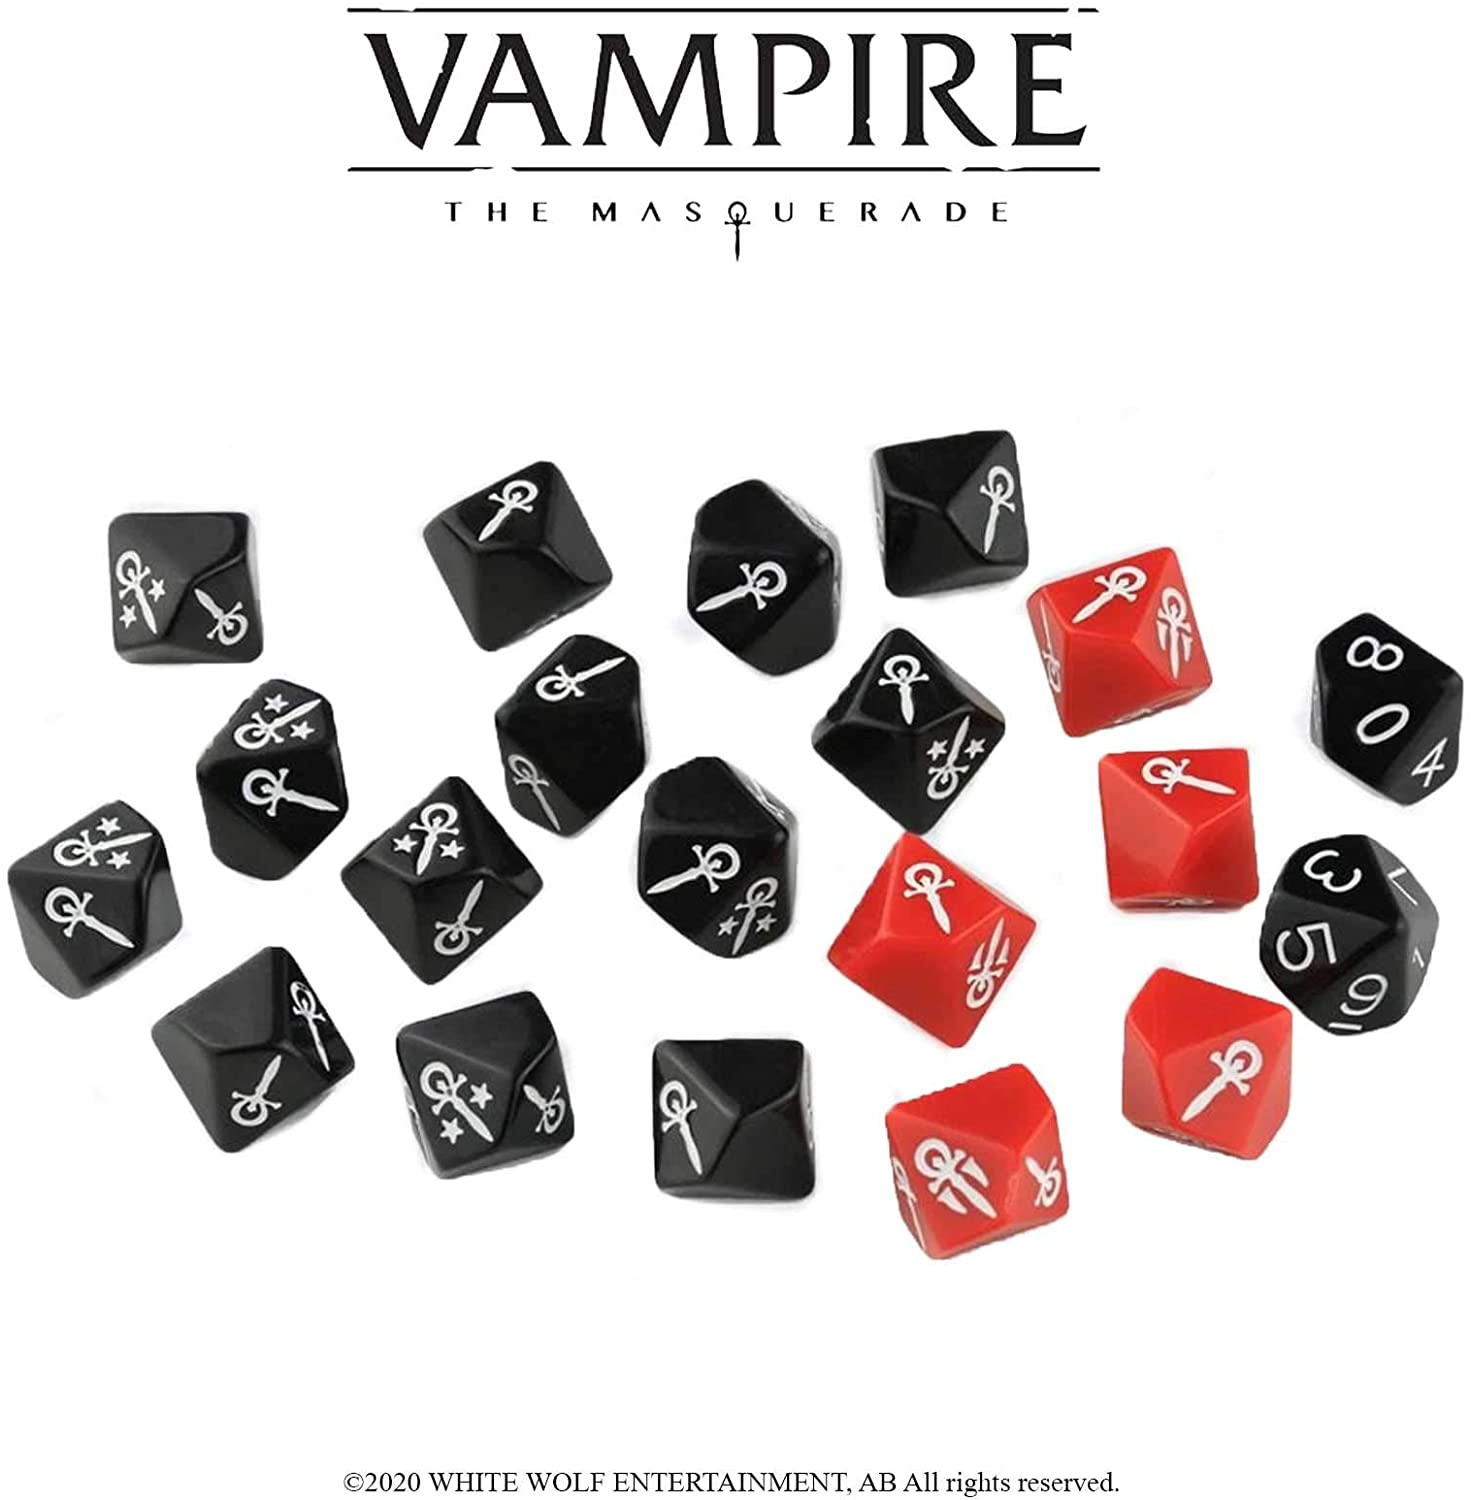 Vampire The Masquerade: Dice Set RPG Accessory | Sunny Pair'O'Dice